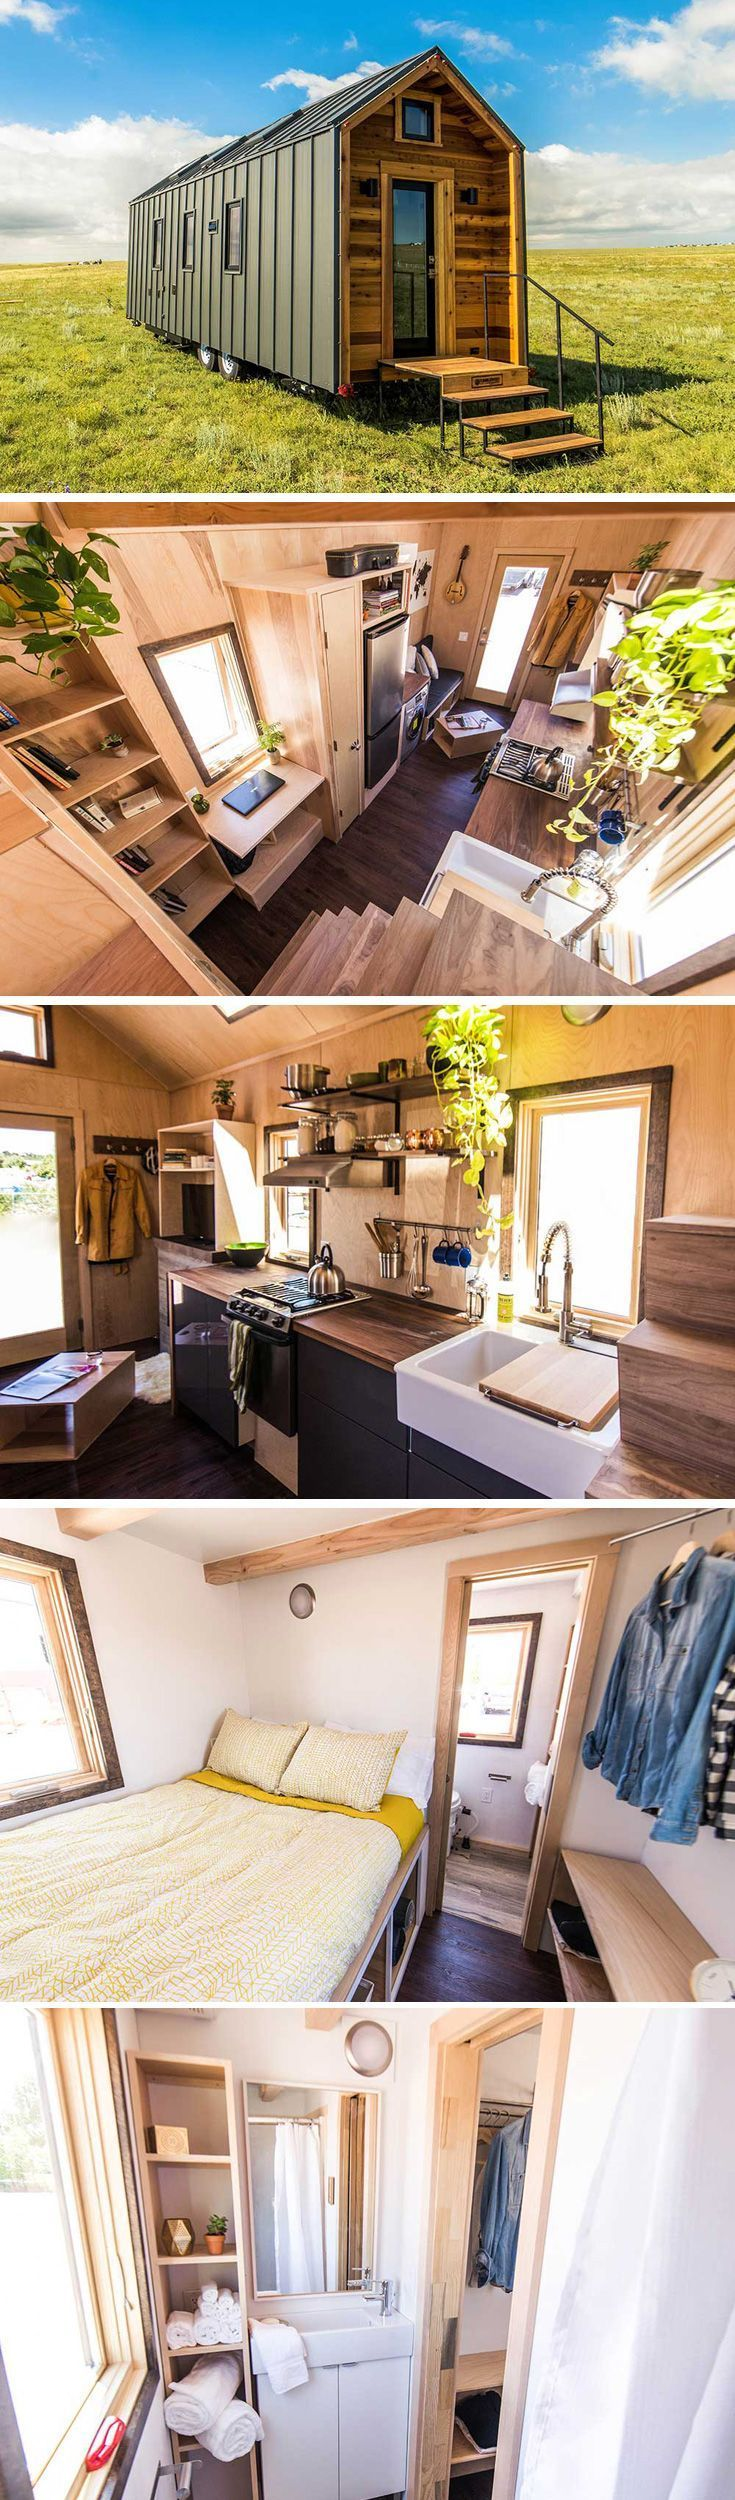 367 Best Tiny House Images On Pinterest